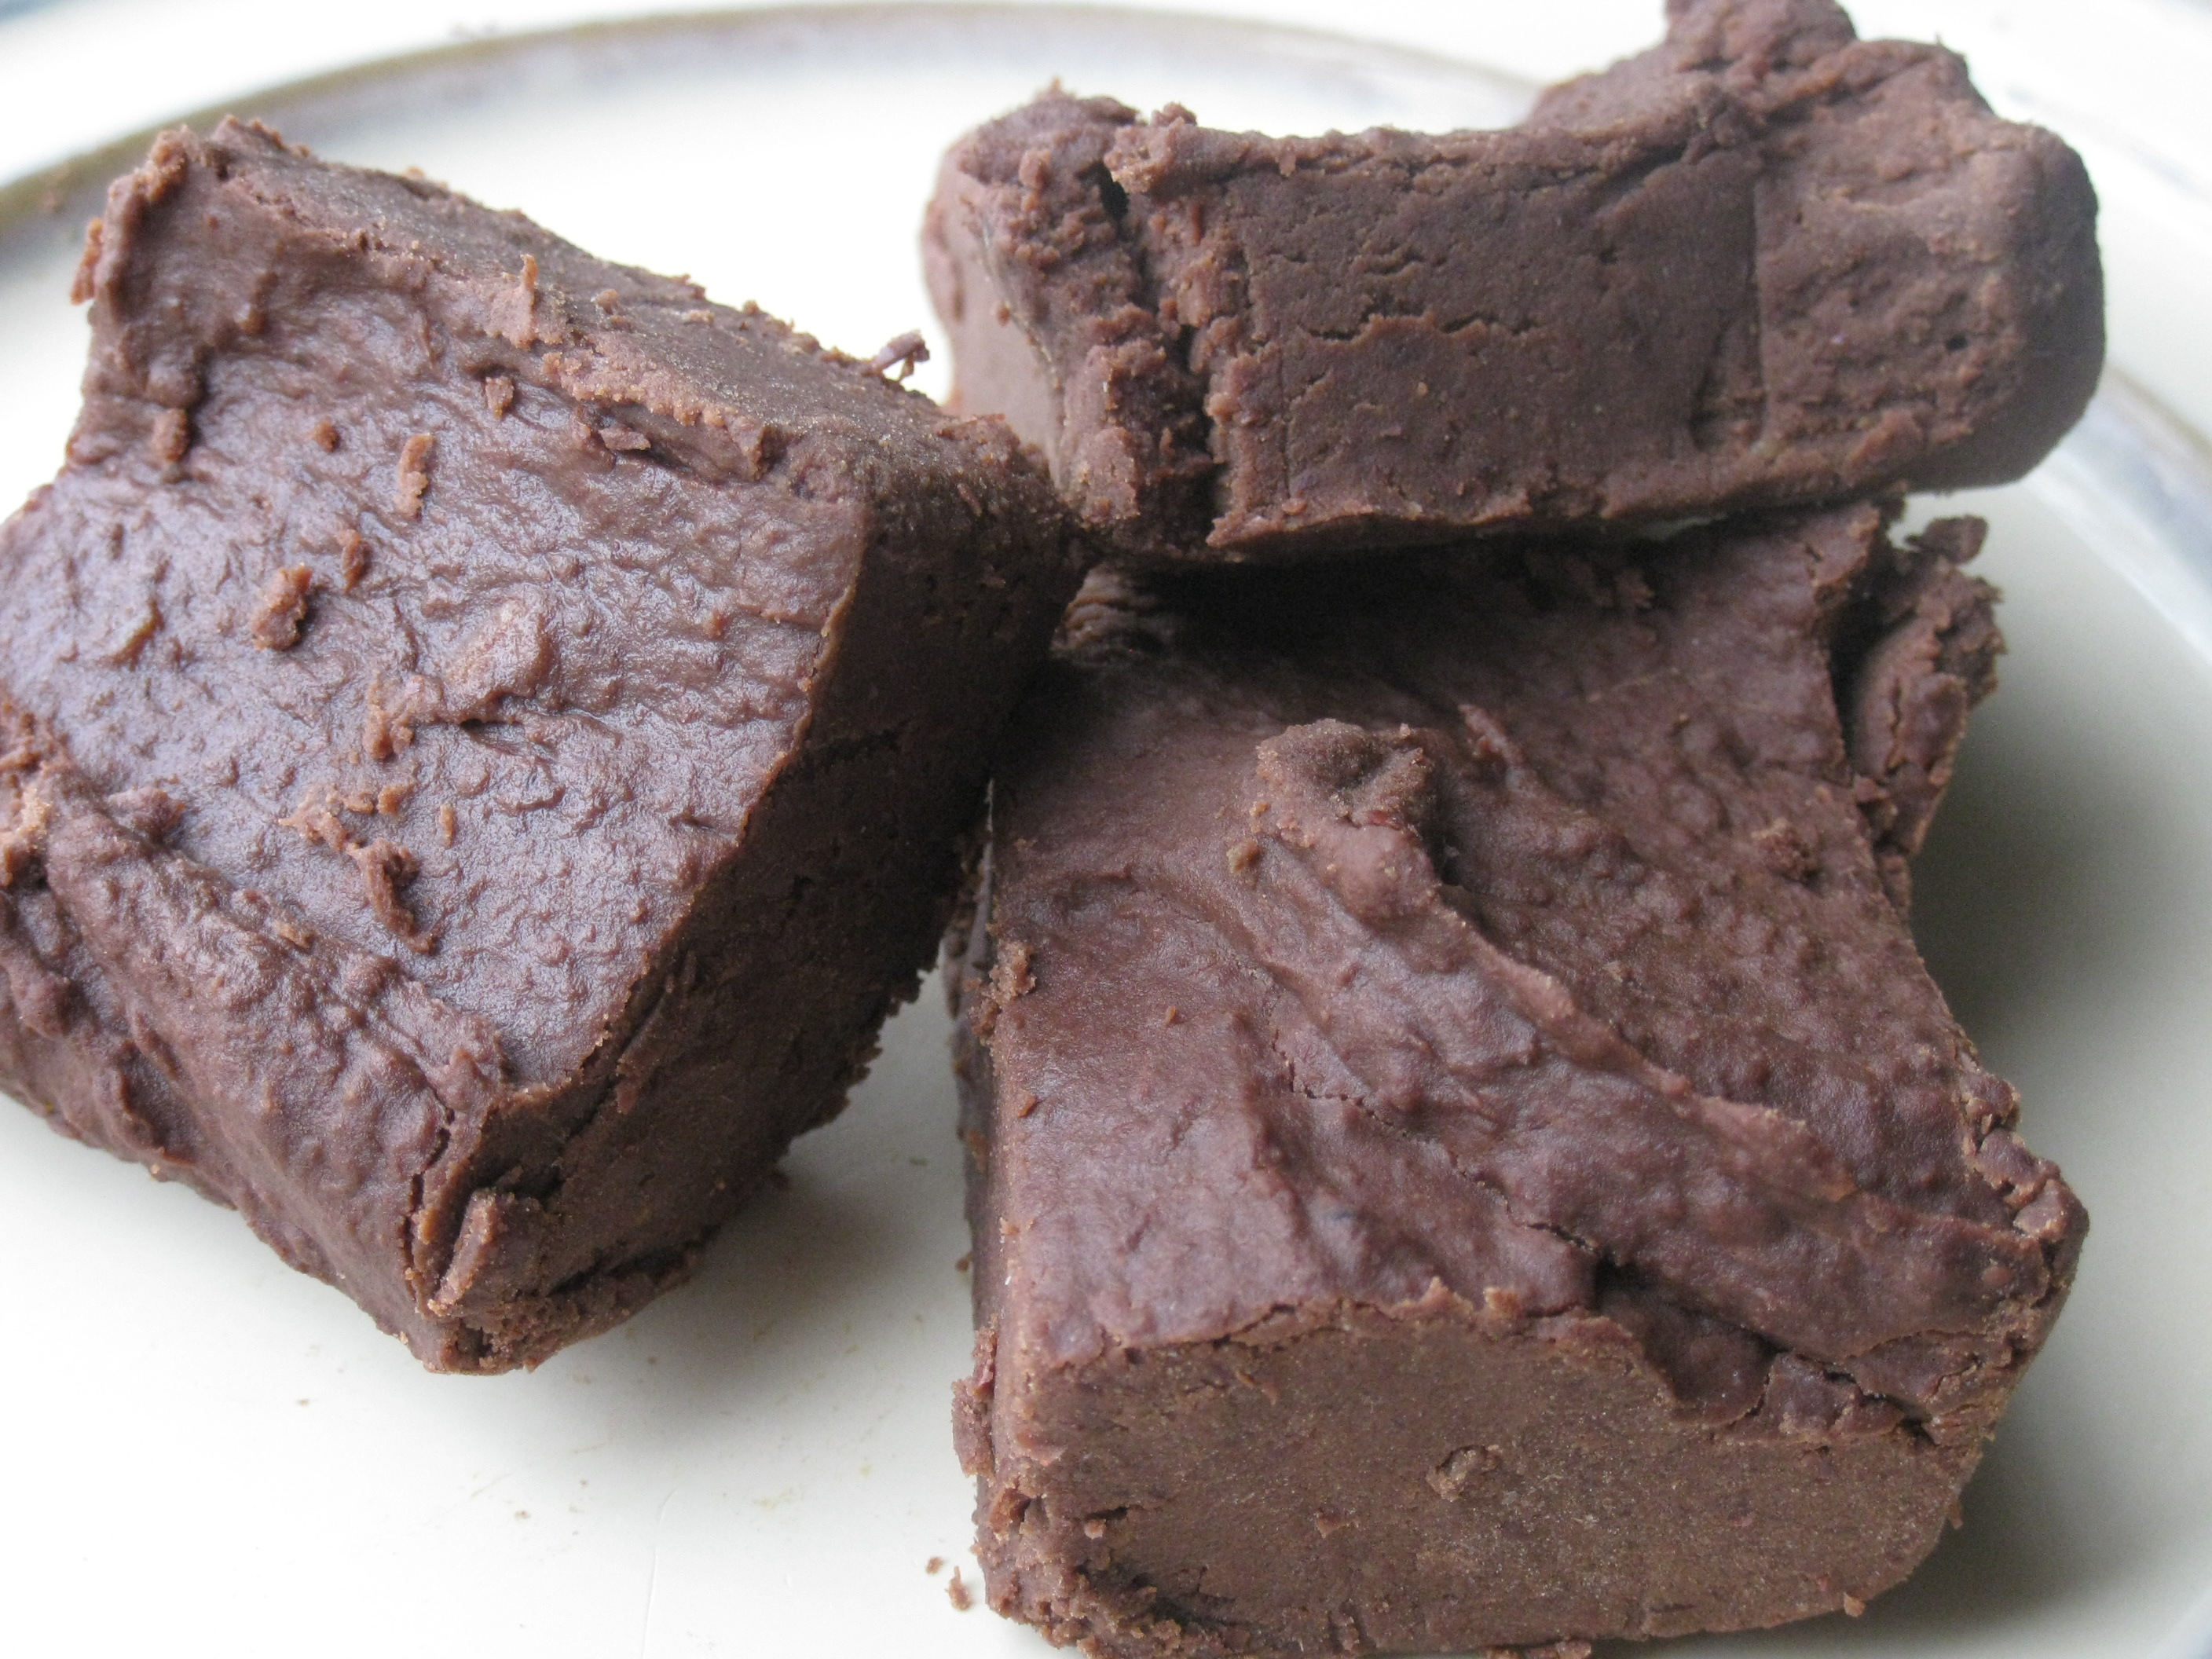 fudge made with stevia or splenda essentials